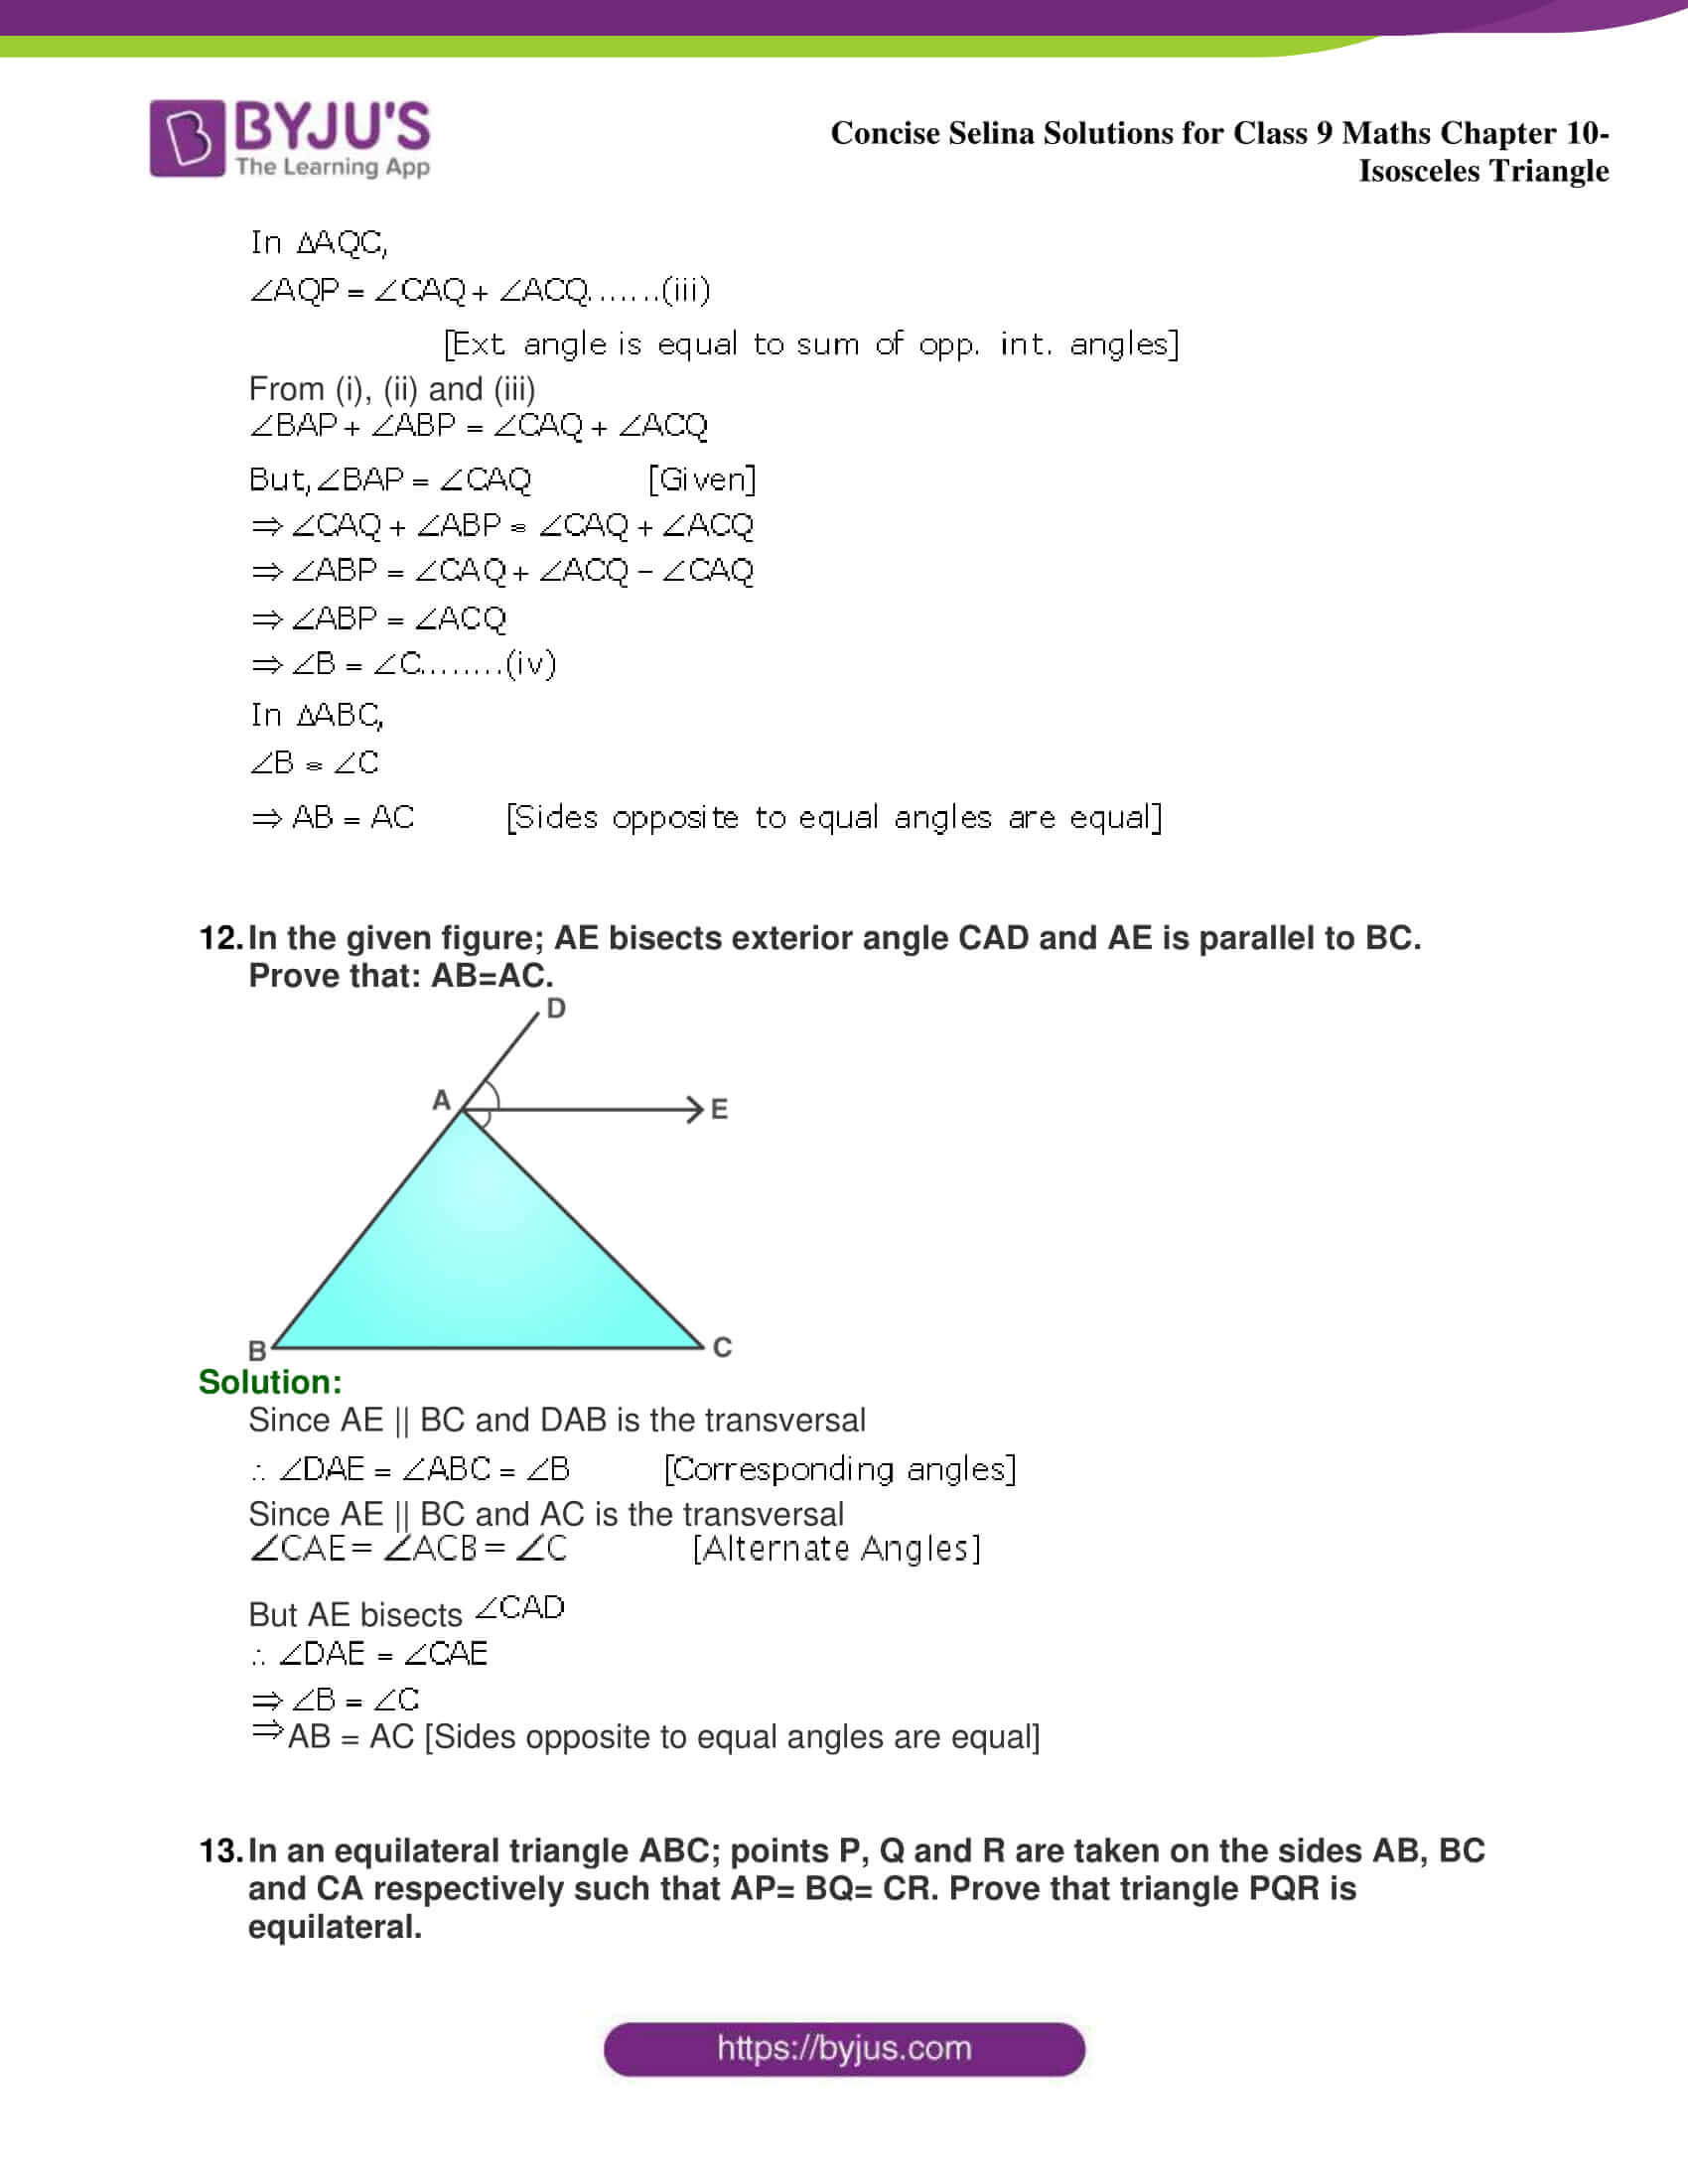 selina Solutions for Class 9 Maths Chapter 10 part 32